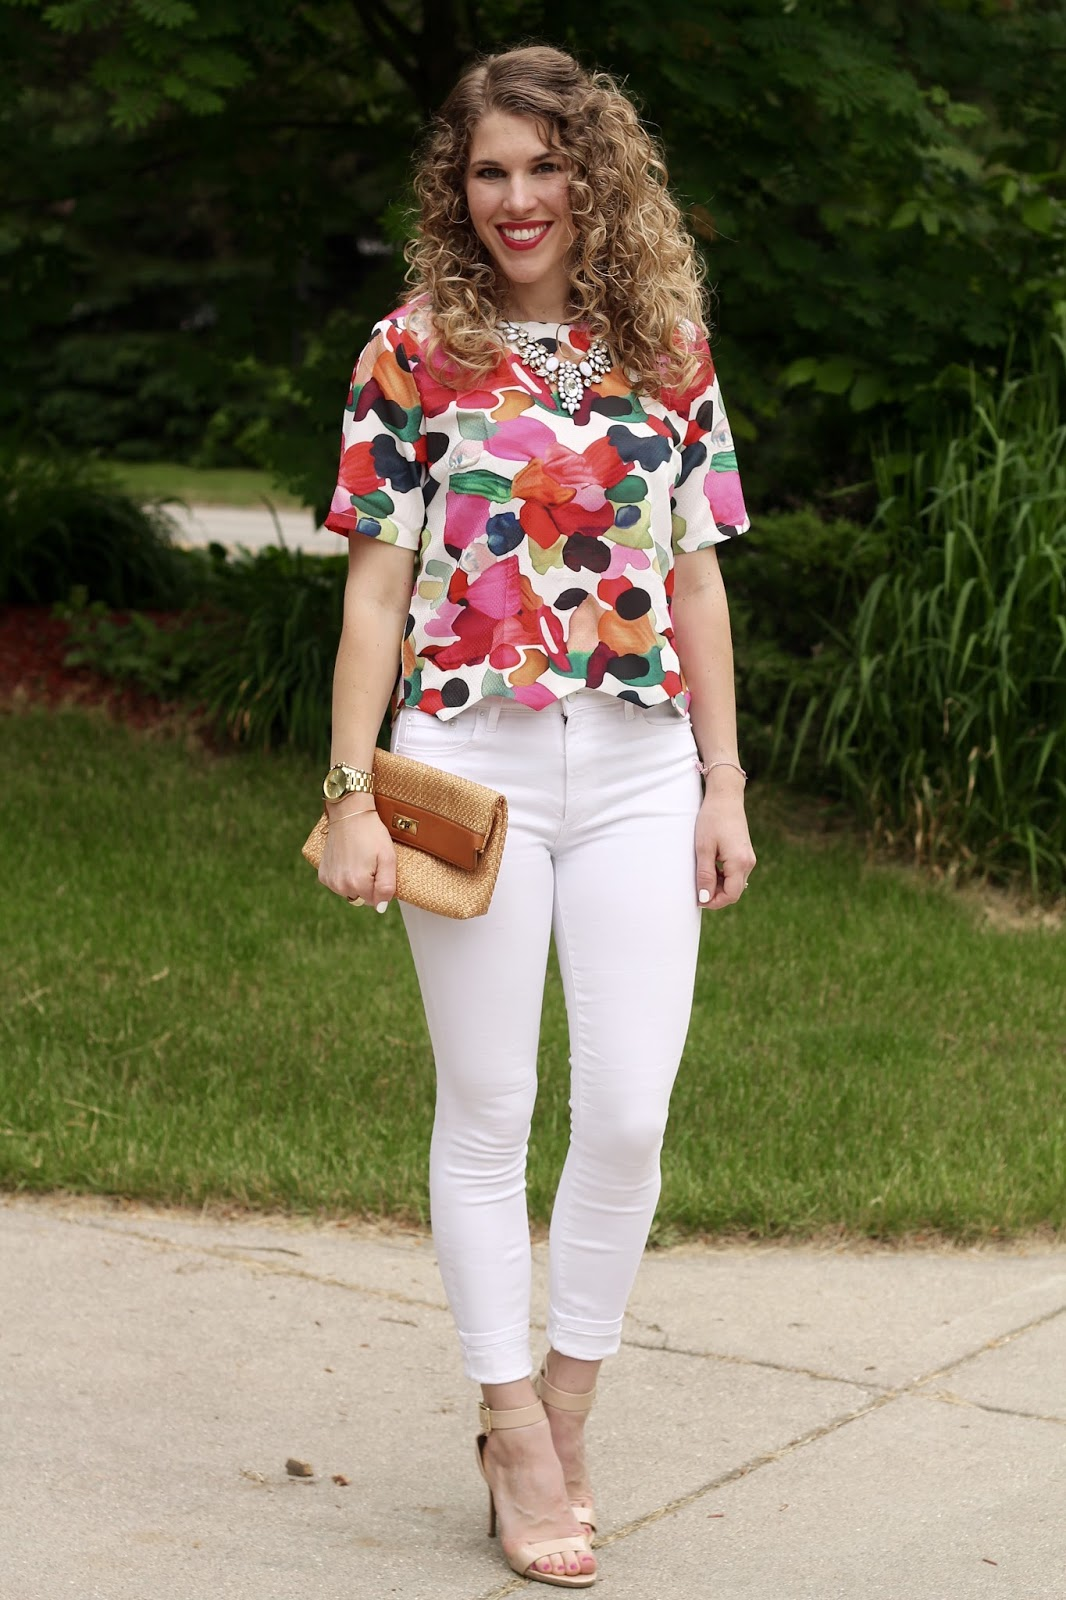 floral crop top, white skinny jeans, nude strappy heels, white statement necklace, straw clutch, spring crop top outfit